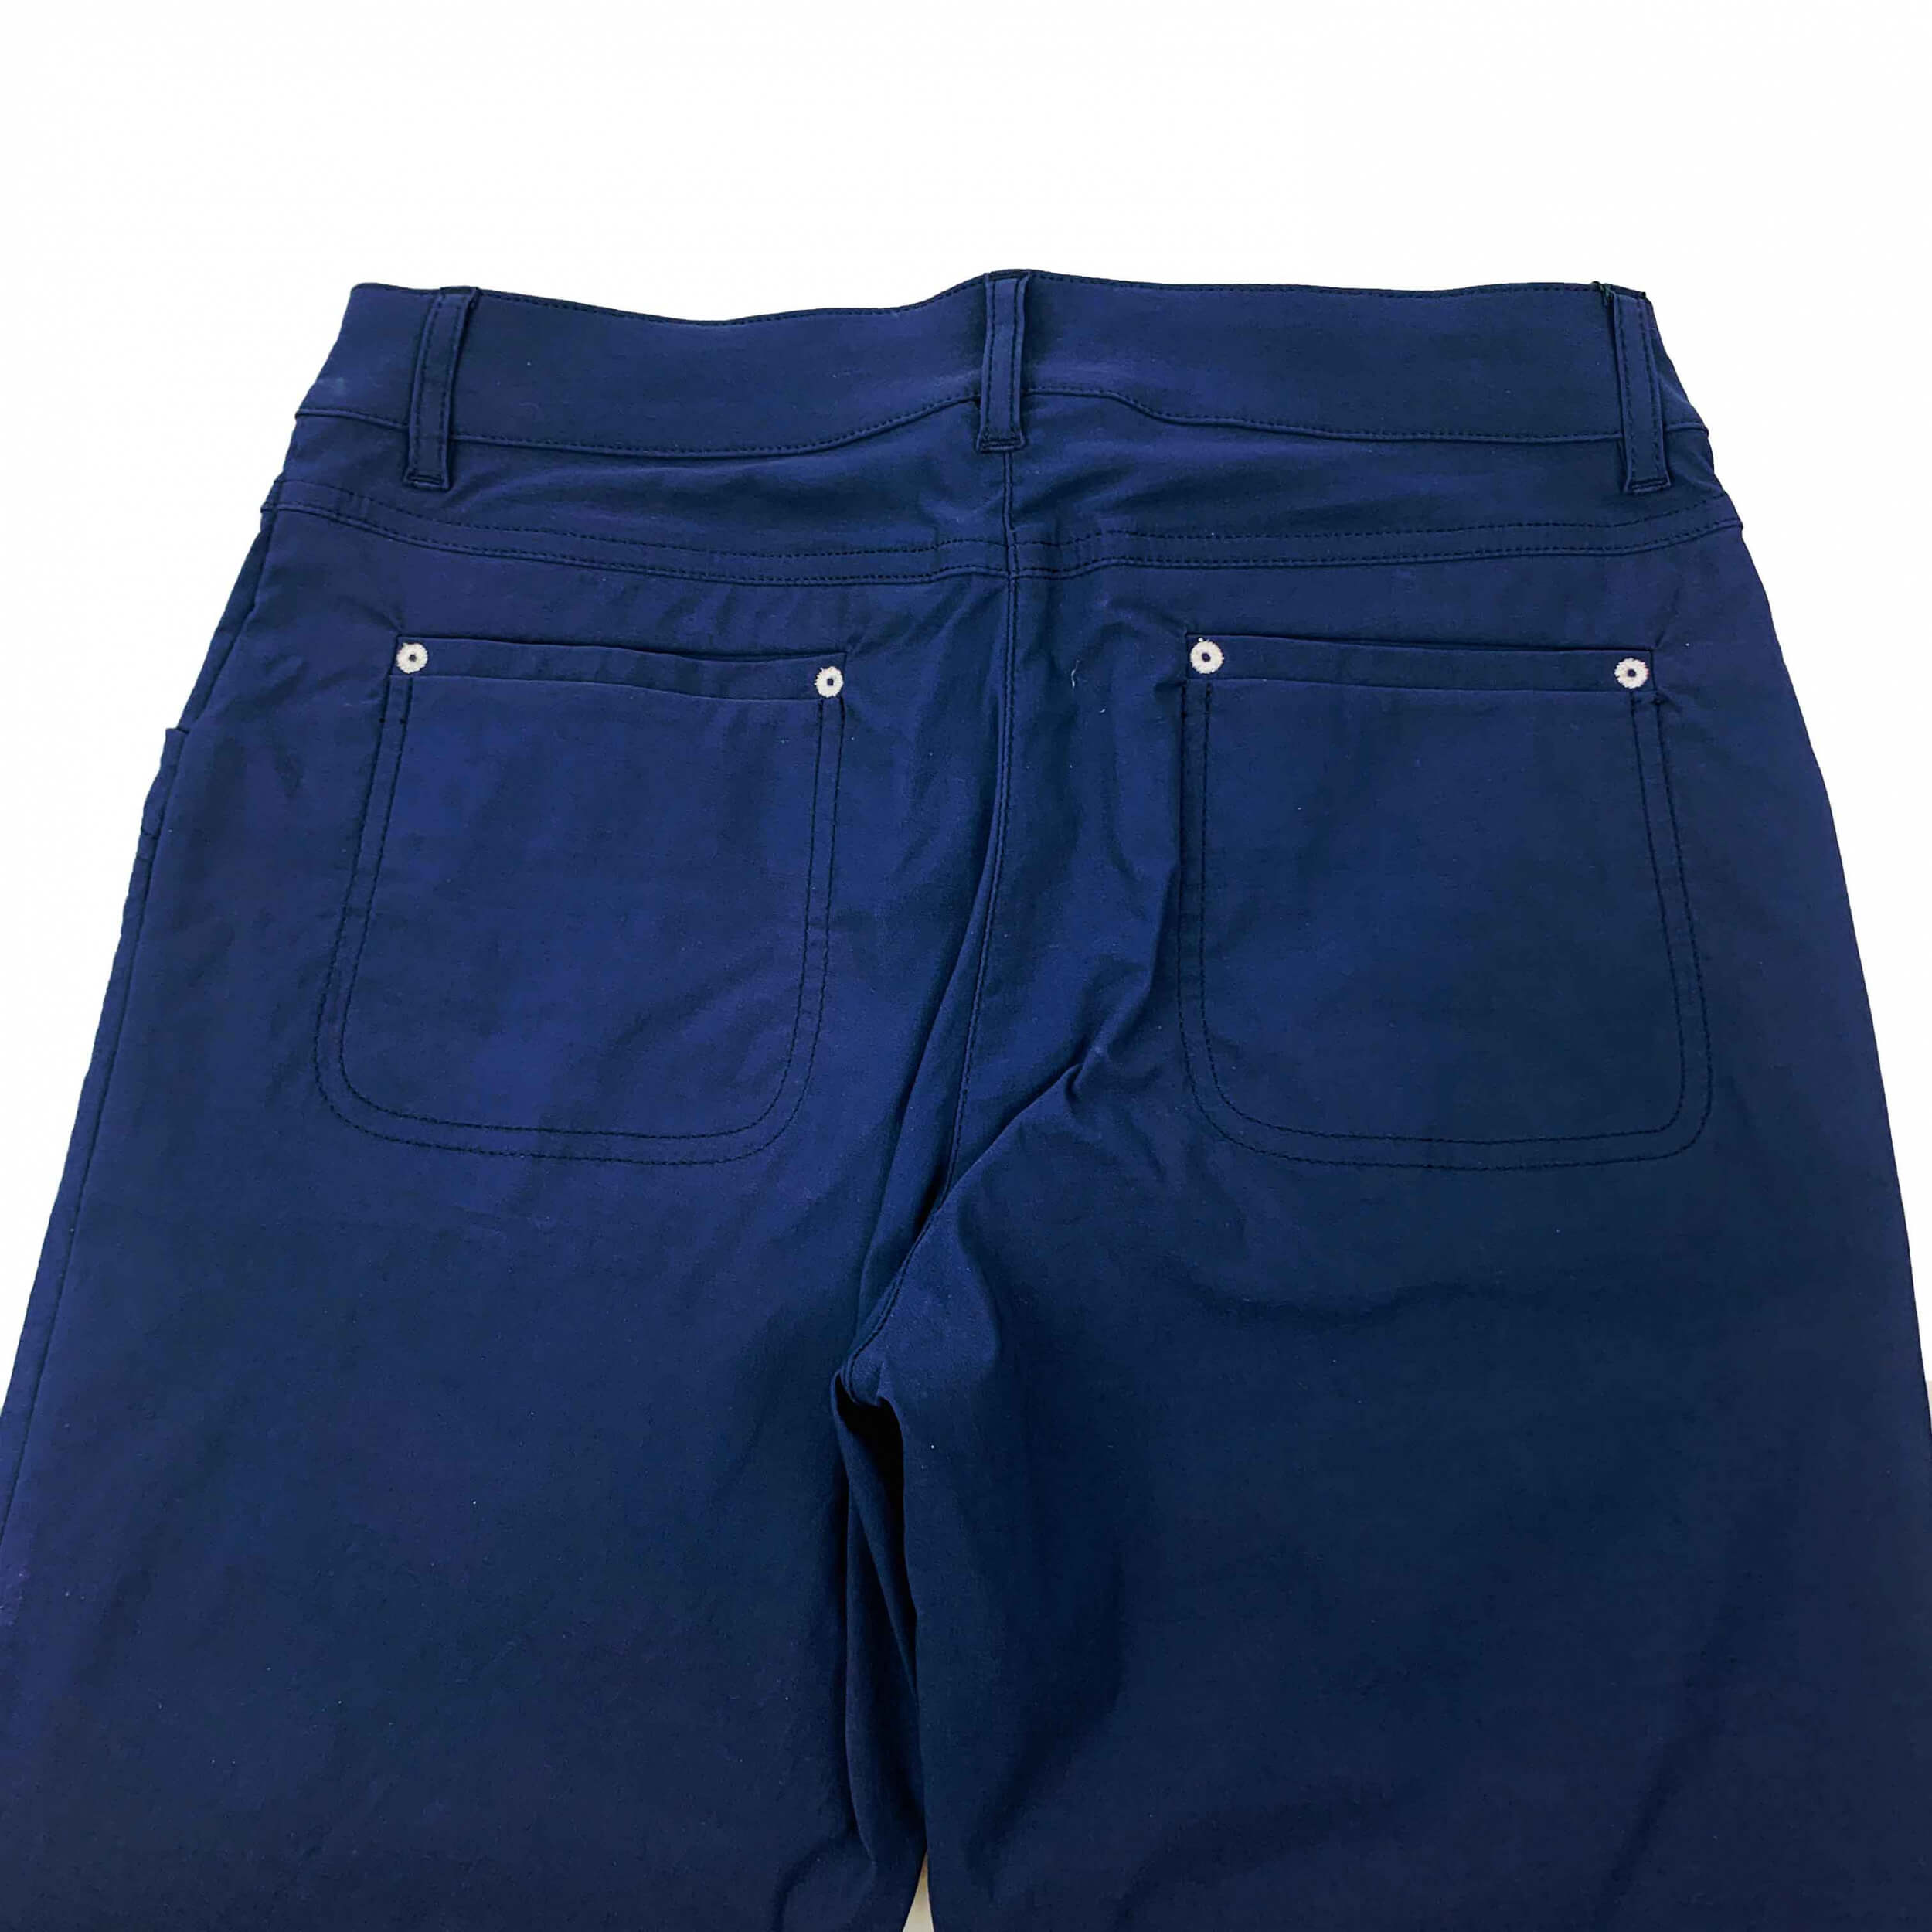 Chervo Damen Hose Salva DRY MATIC navy 599